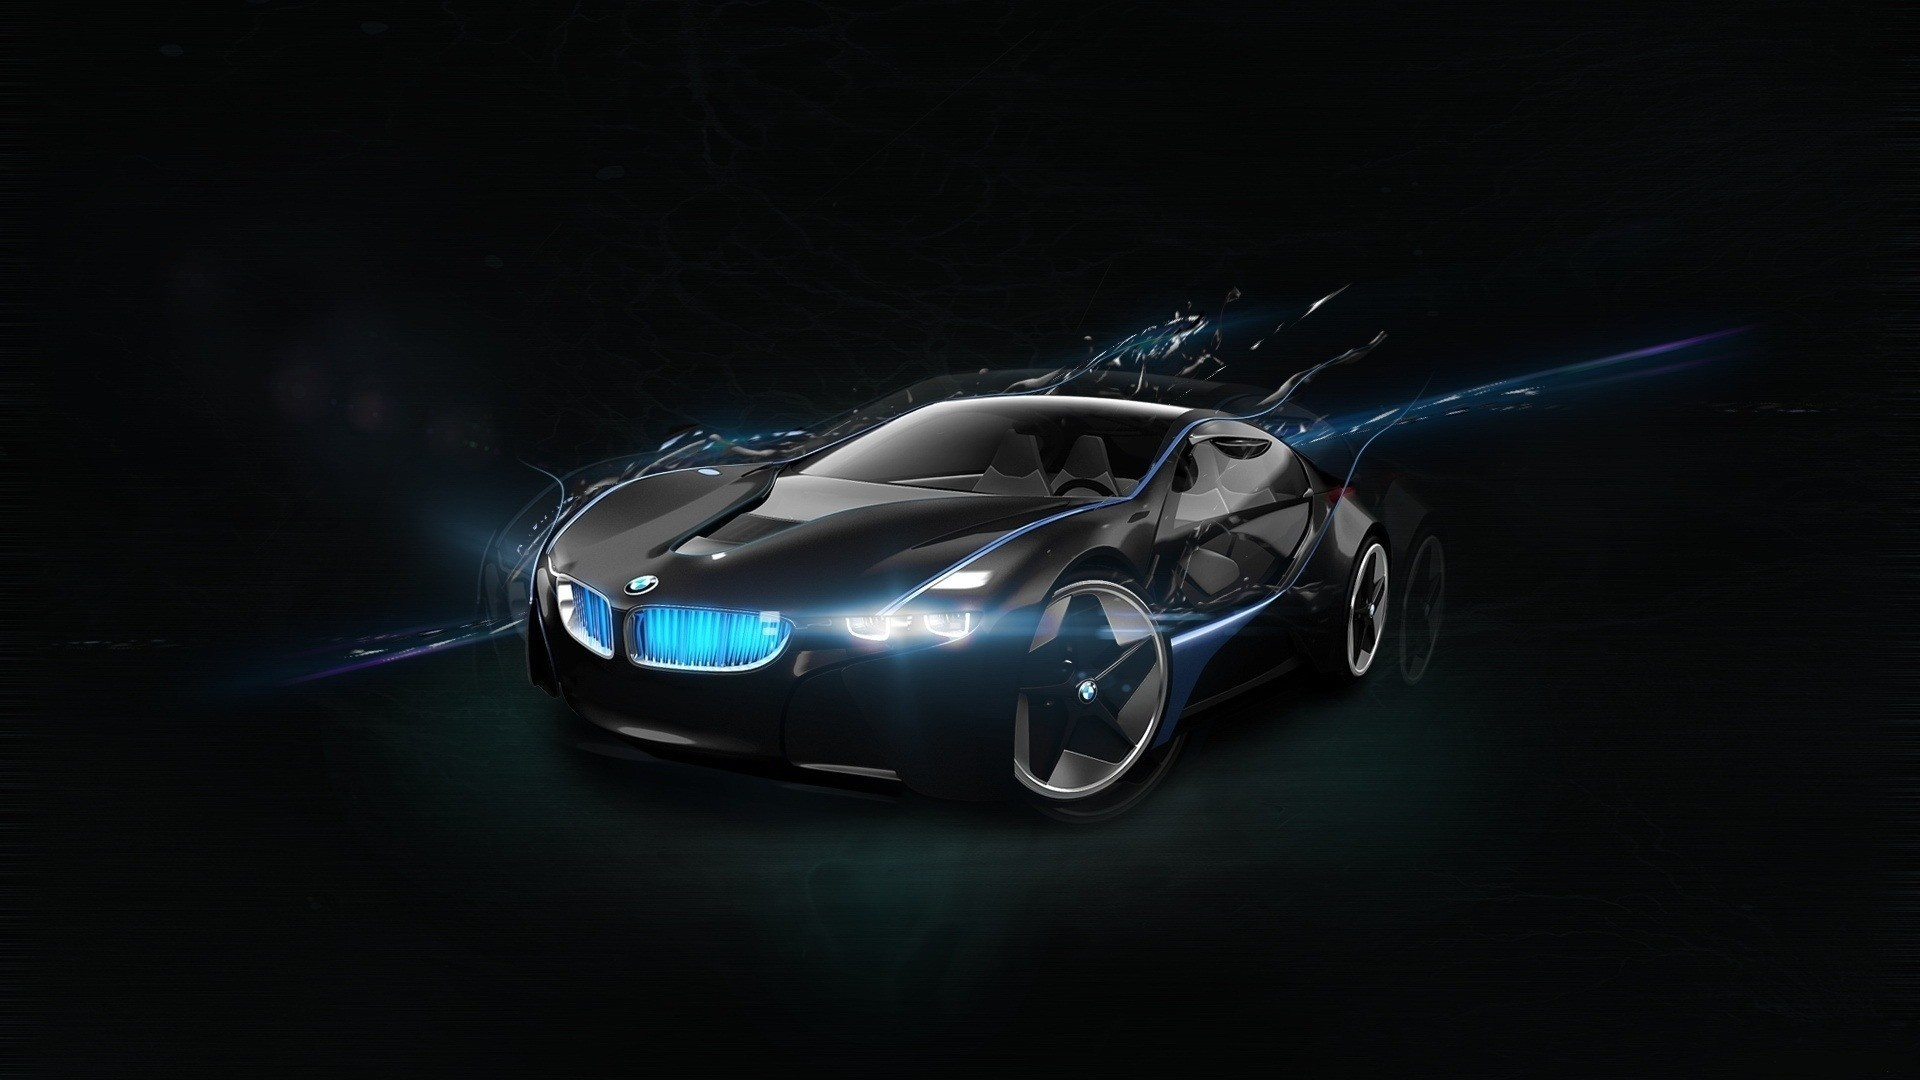 BMW Vision Super Car Wallpapers In Jpg Format For Free Download